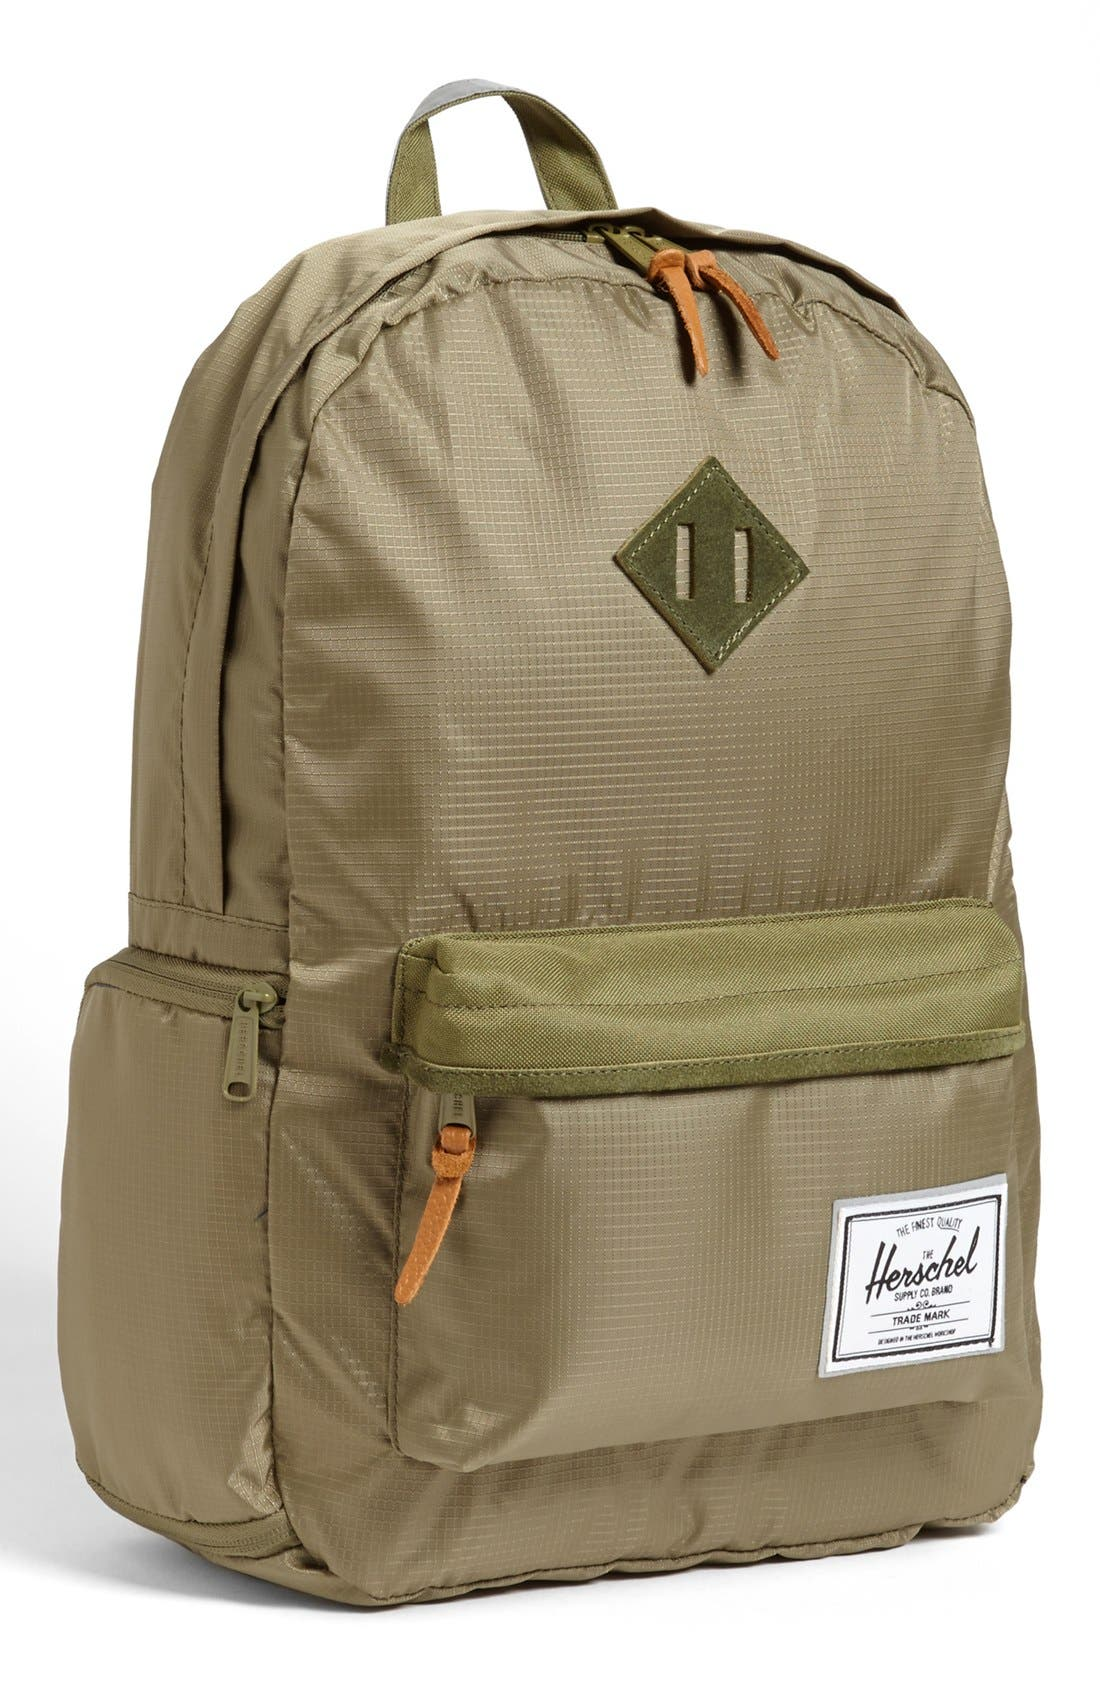 Alternate Image 1 Selected - Herschel 'Heritage - New Balance' Backpack